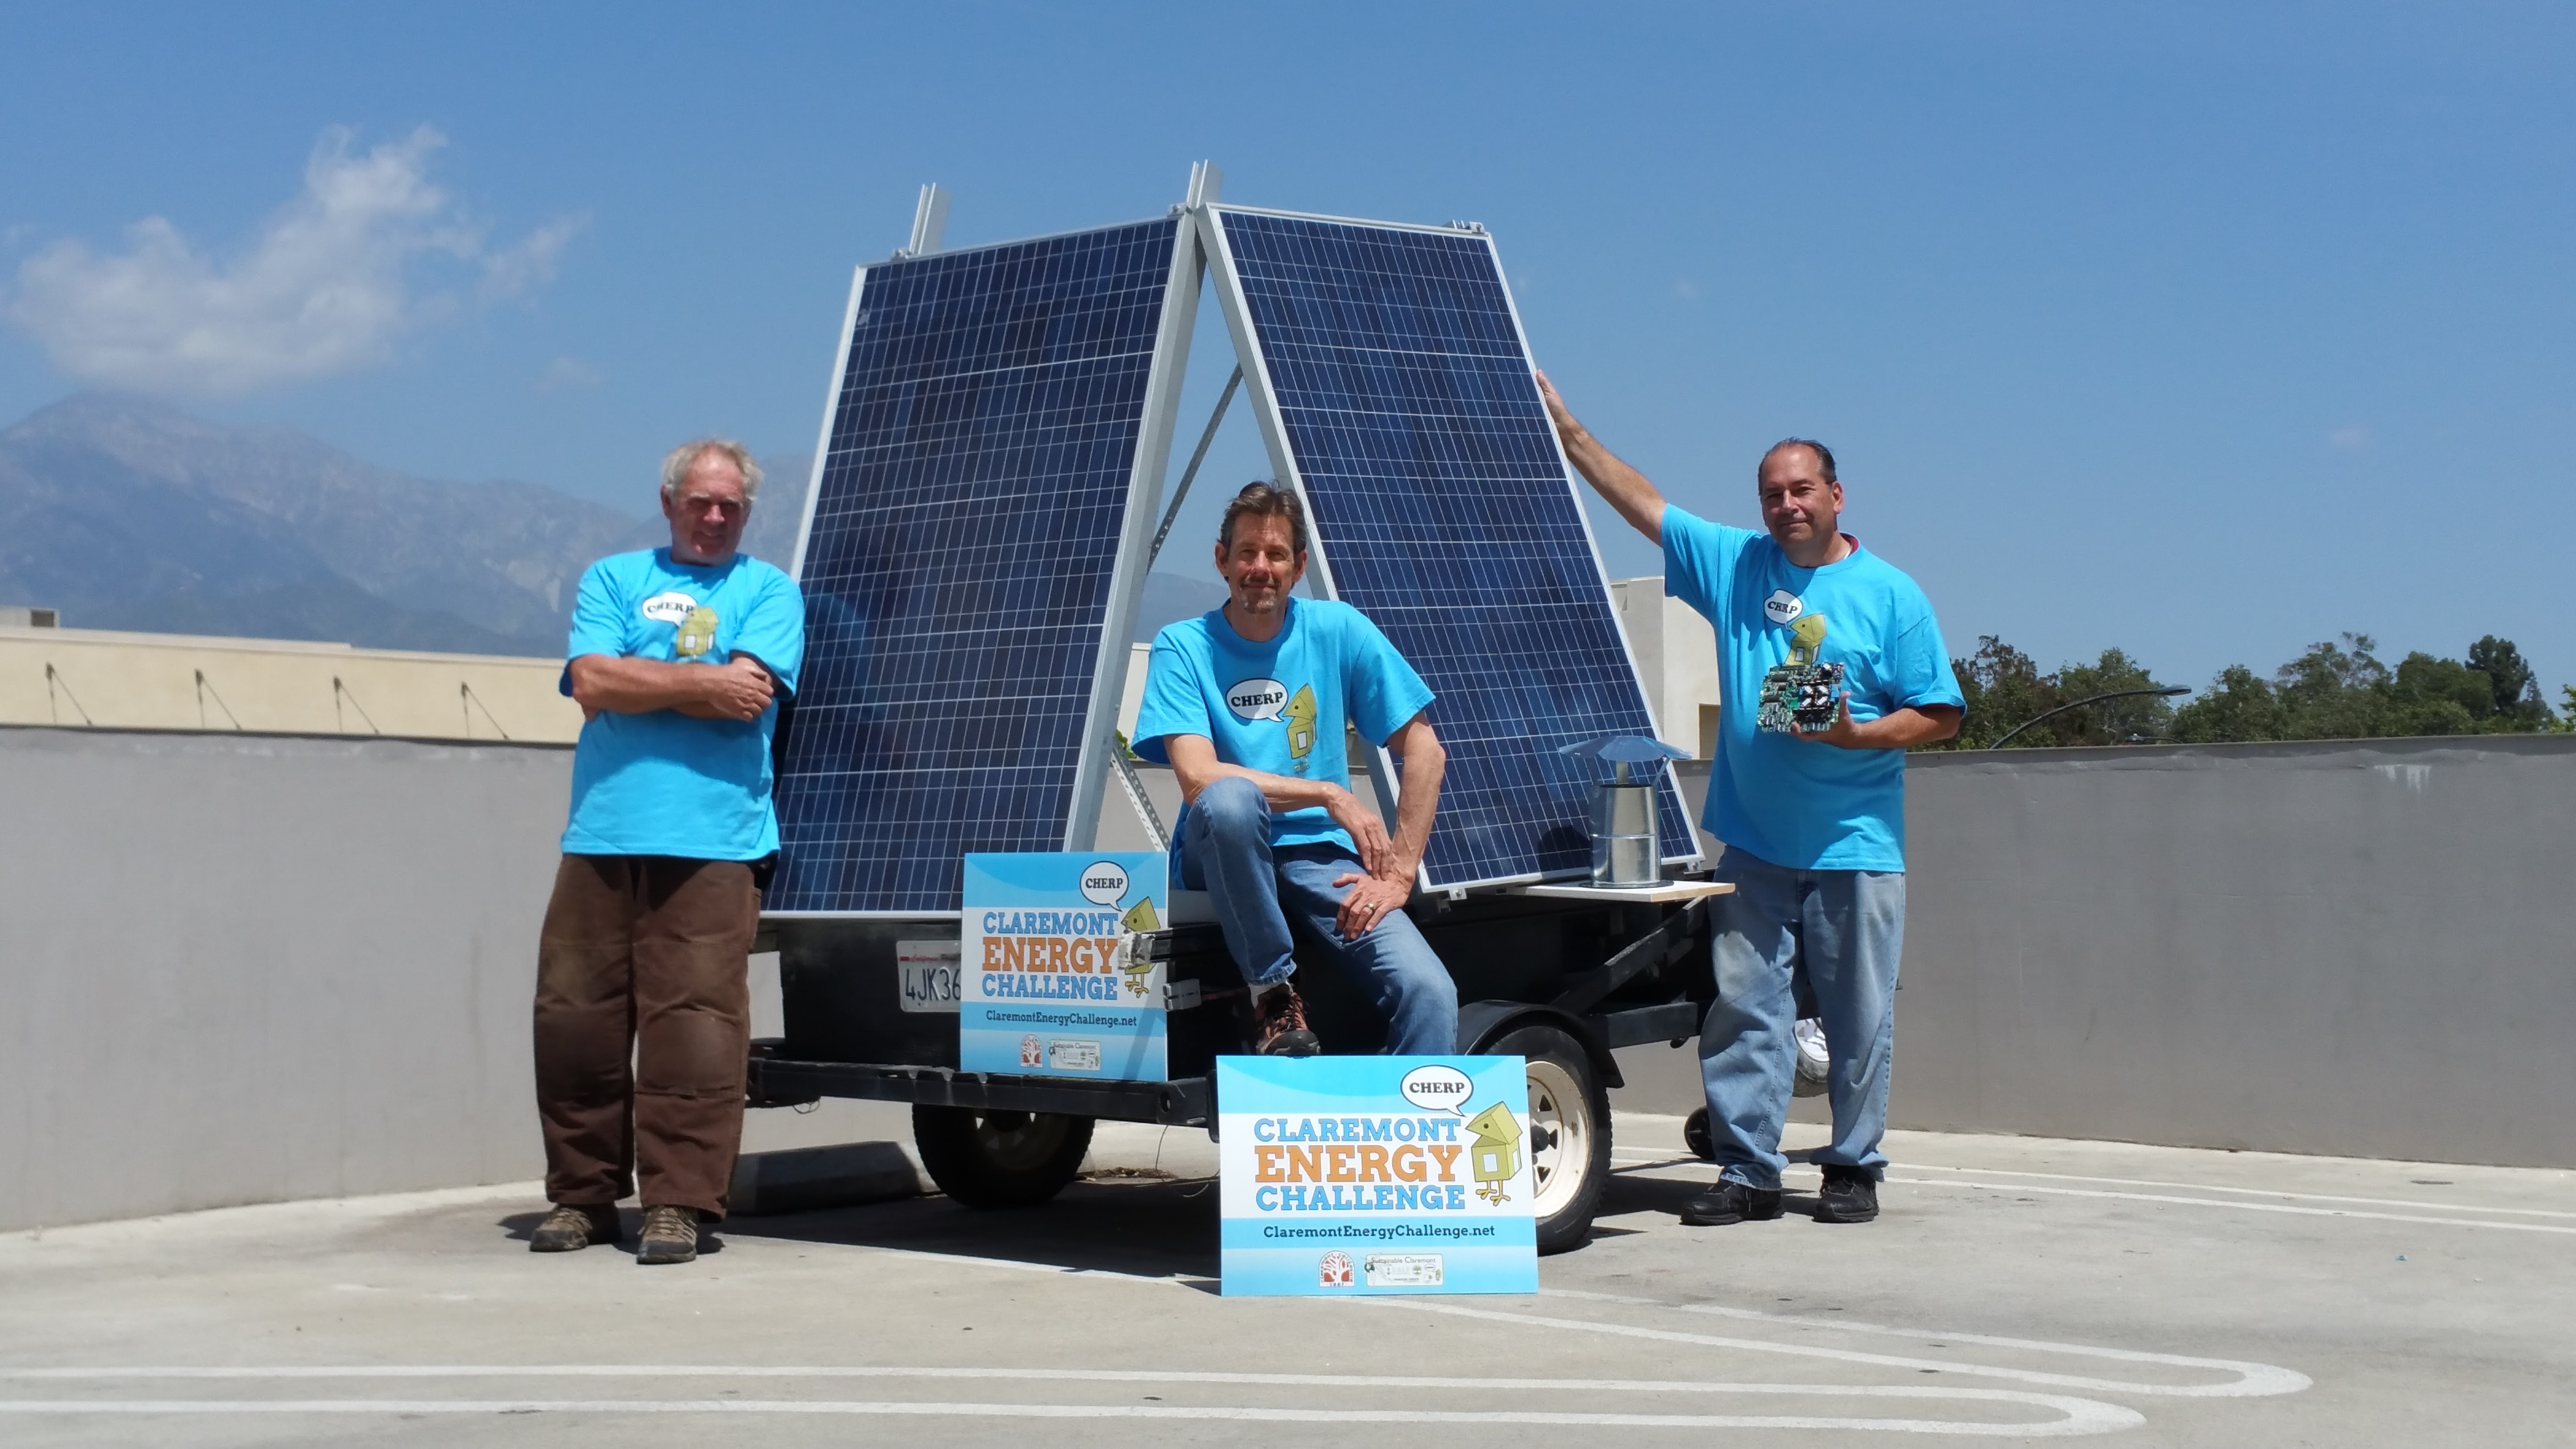 CHERP members on a roof with a solar panel.